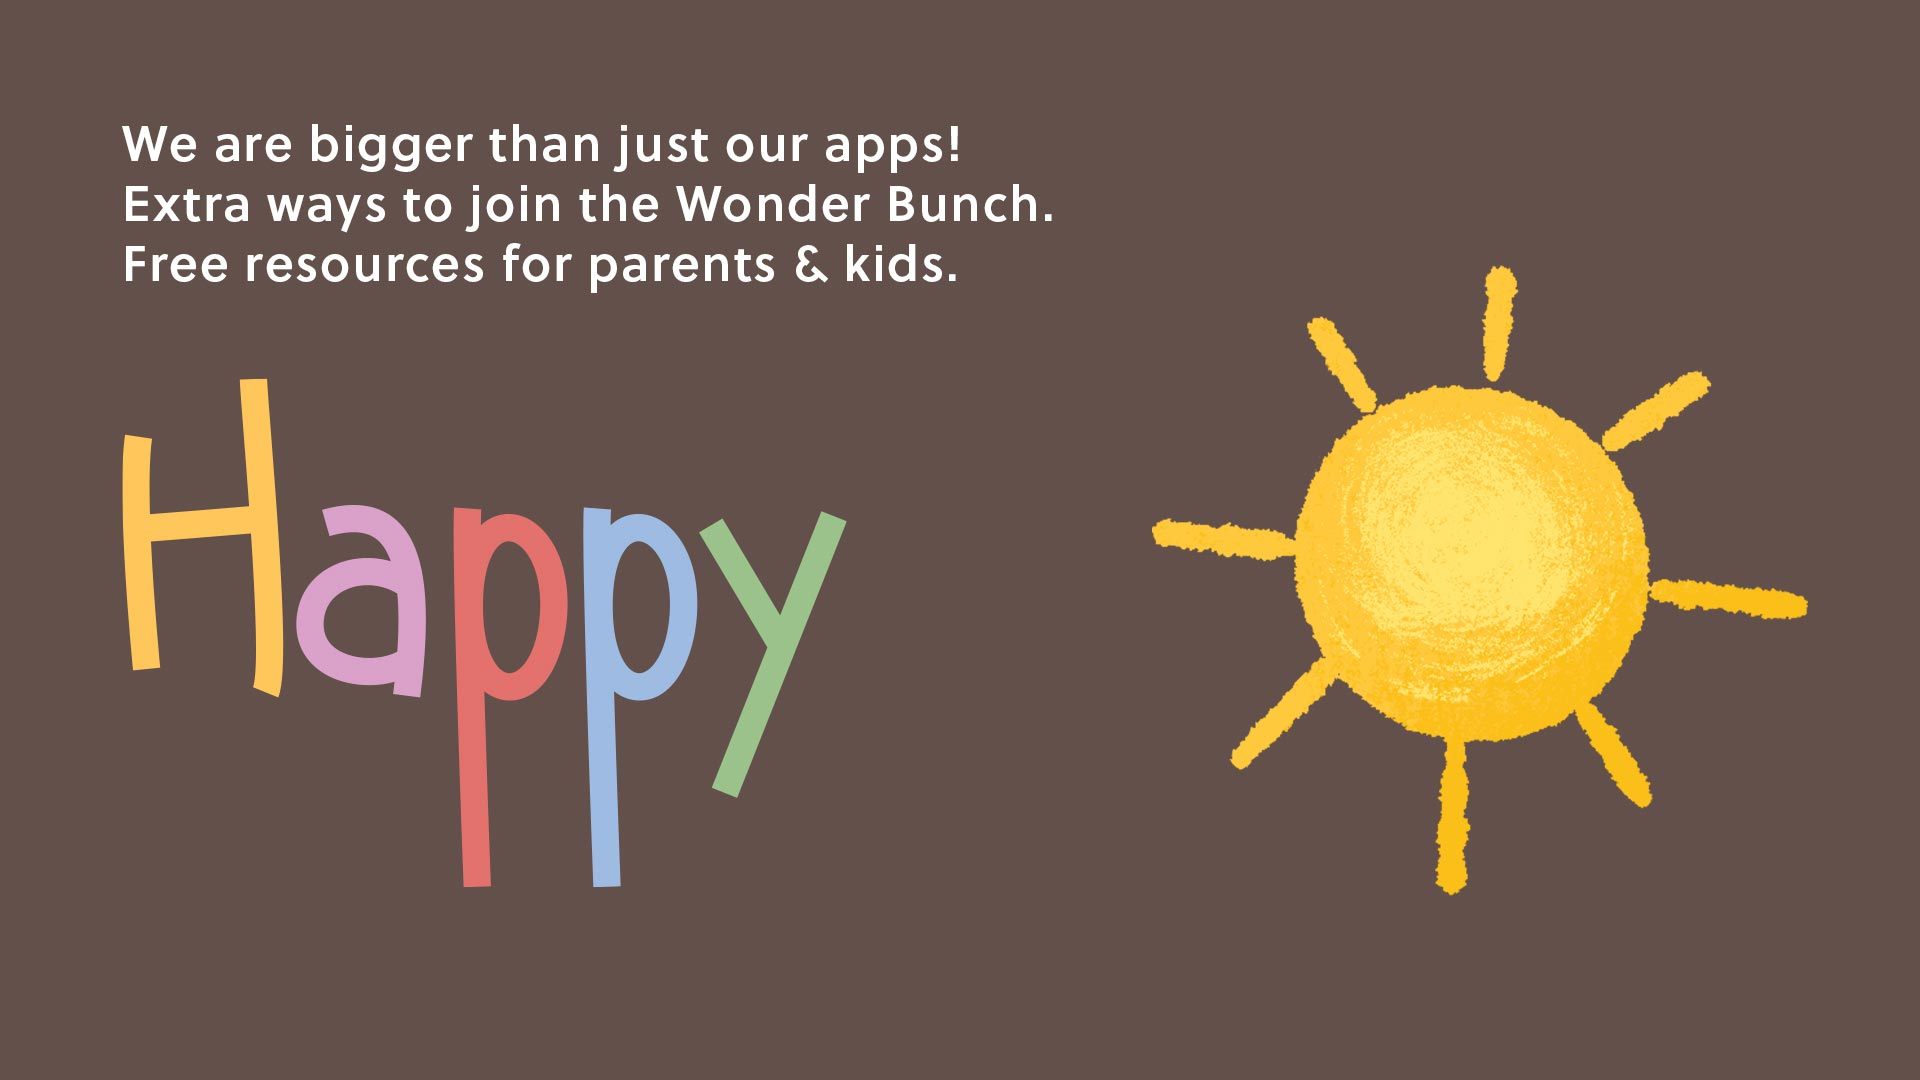 Happy - We are bigger than just our apps! Extra ways to join the Wonder Bunch. Free resources for parents and kids.